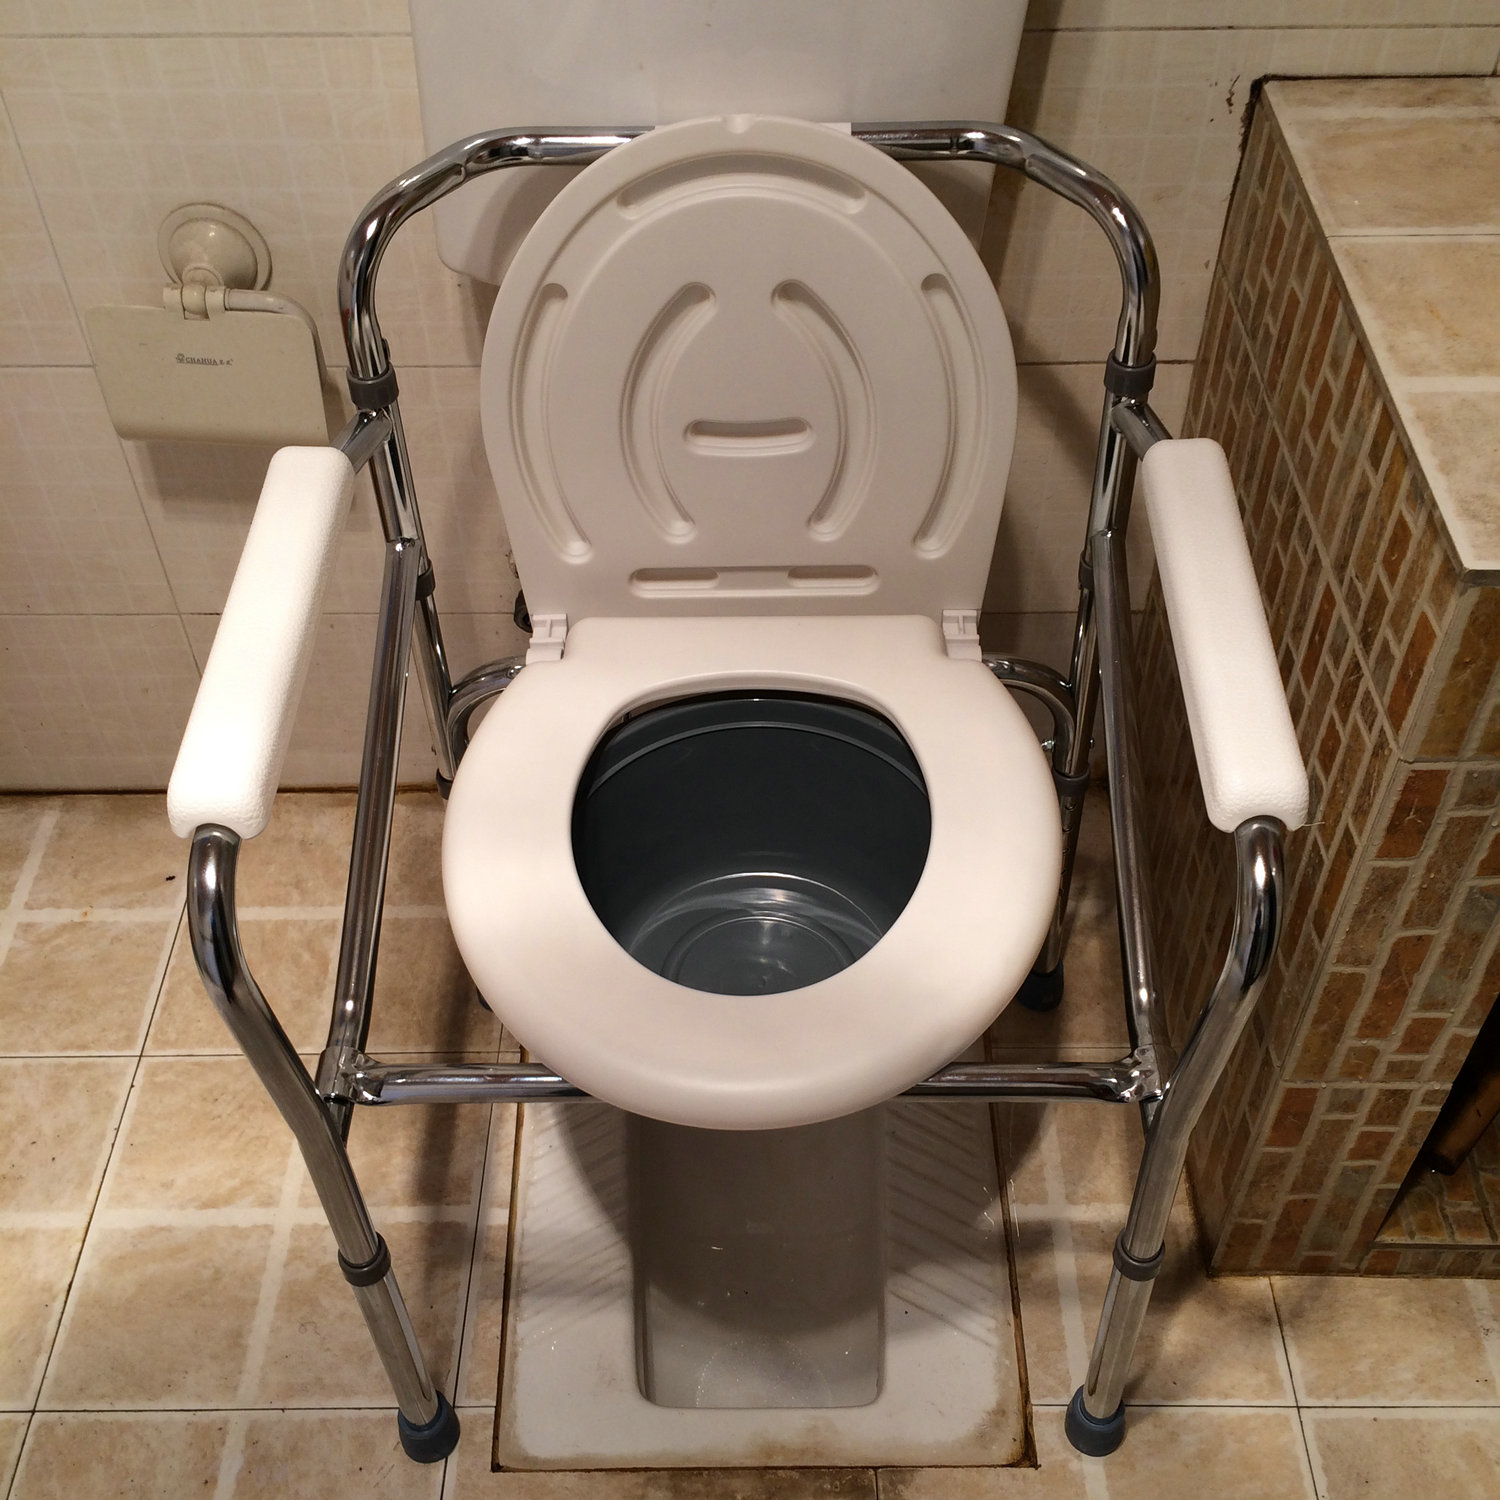 Stainless steel lifting folding toilet increased toilet seat chair